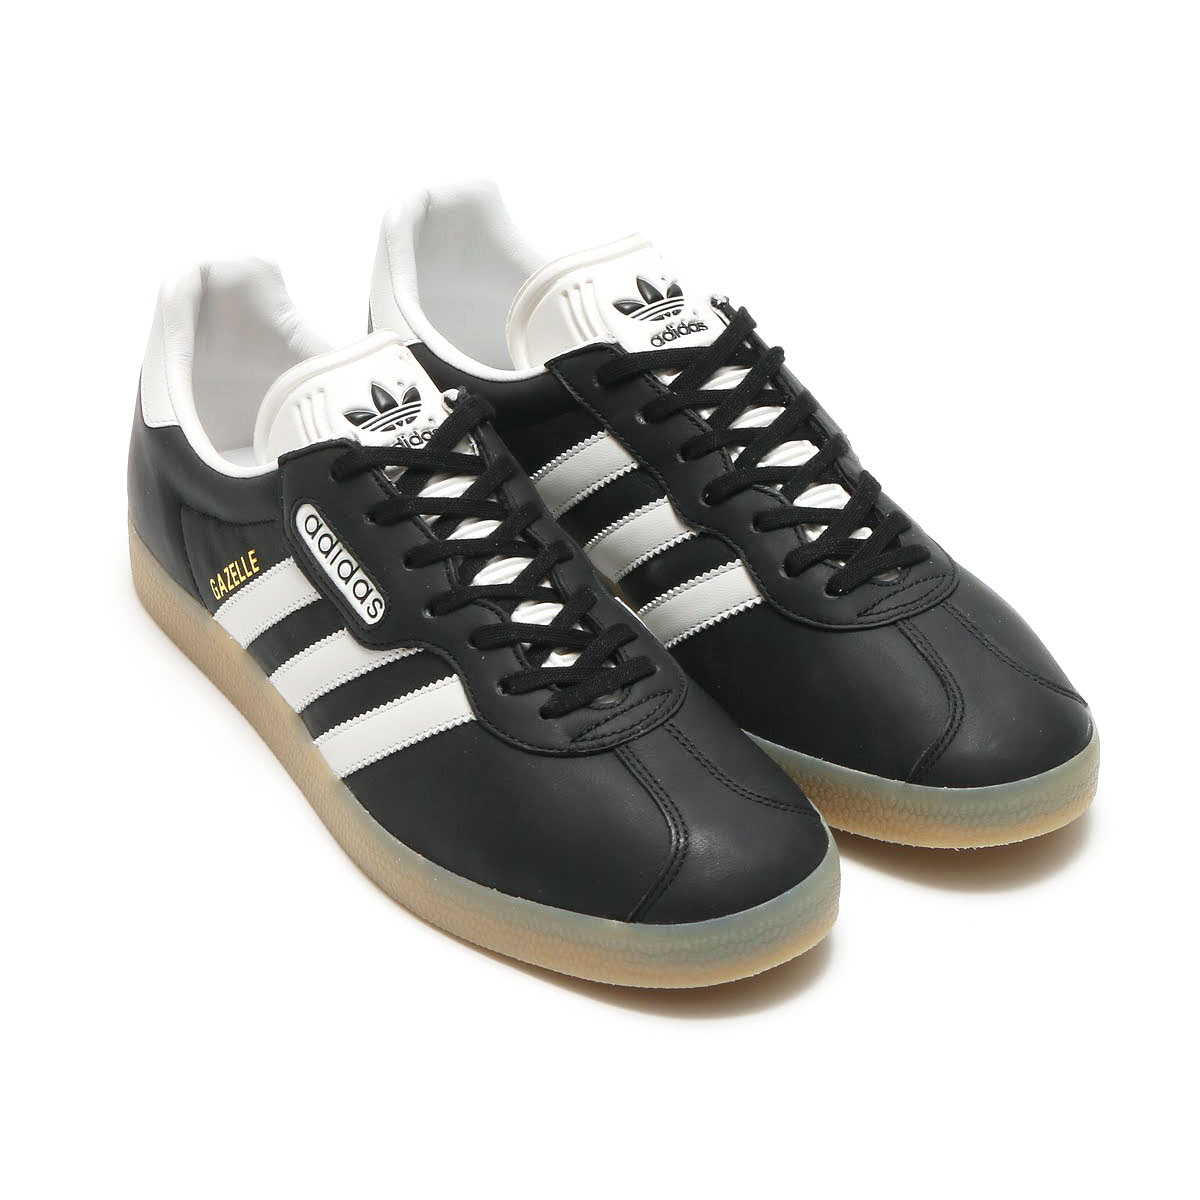 adidas Originals GAZELLE SP (アディダス ガゼル SP) CORE BLACK/VINTAGE WHITE S15/GUM4【メンズ レディース スニーカー】17SS-I